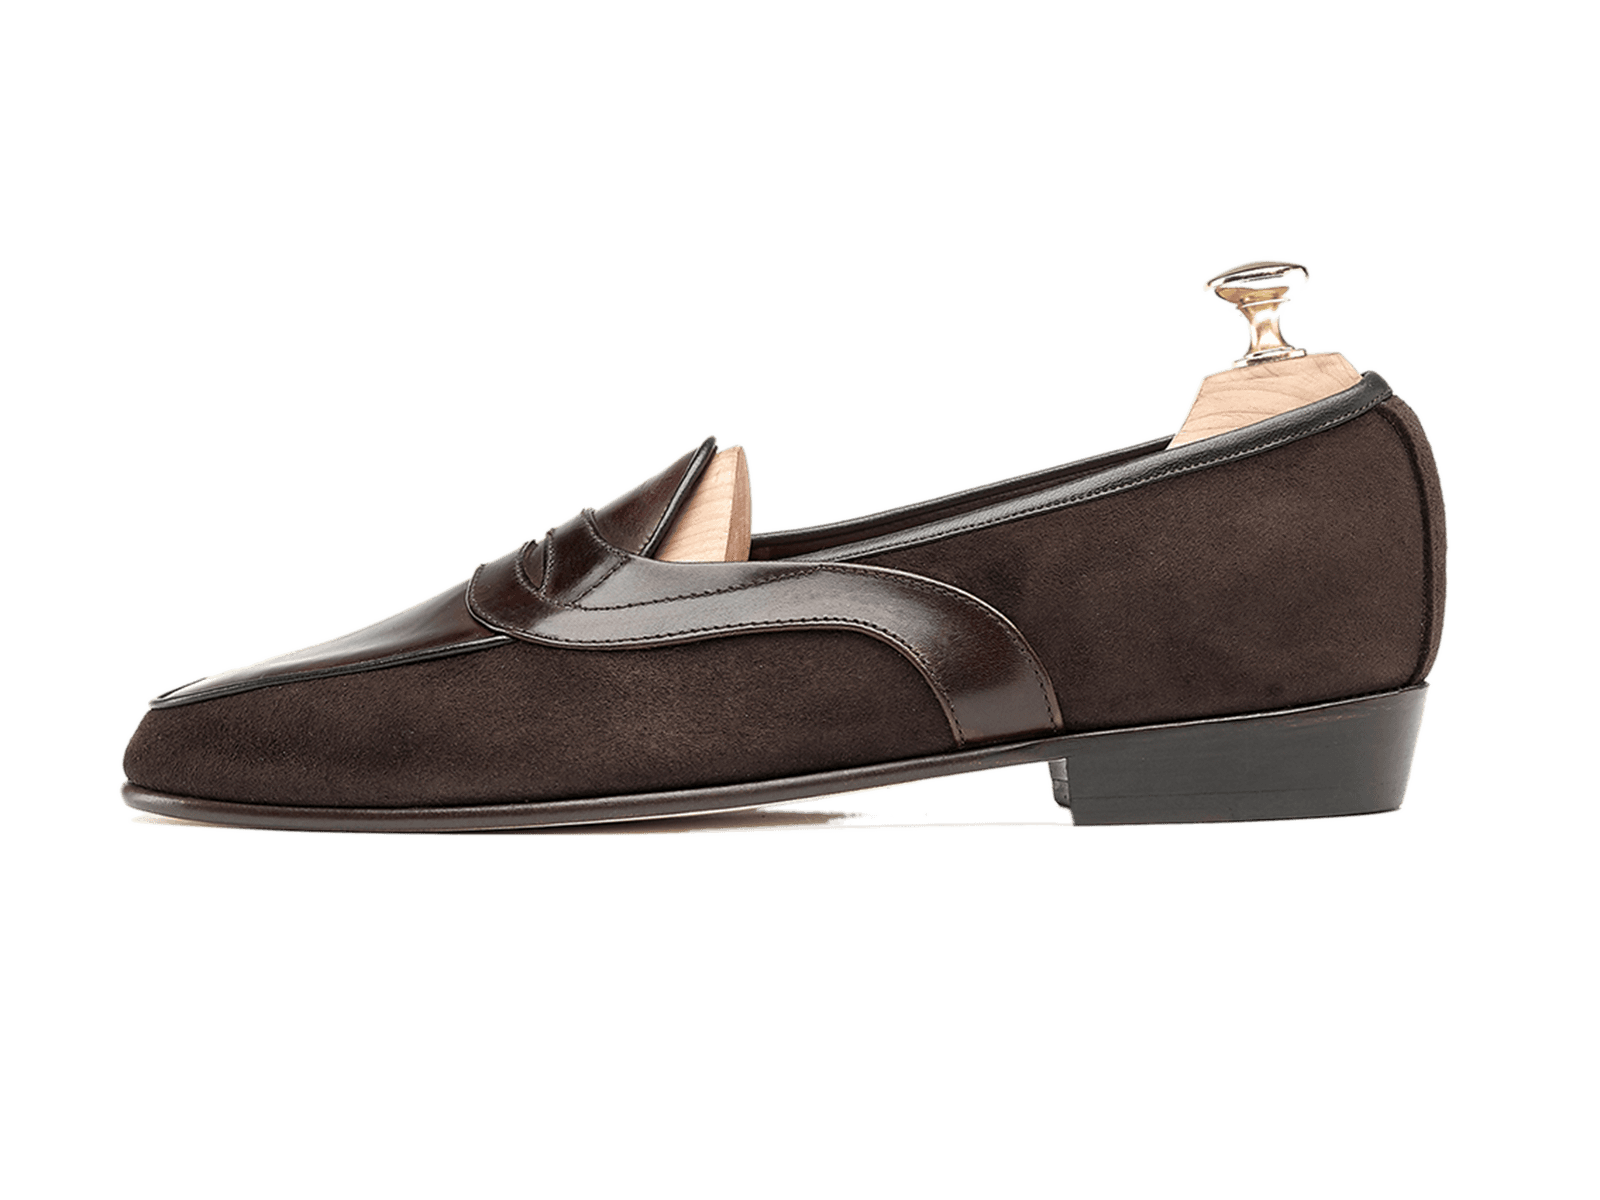 Sagan Classic Saddle in Dark Brown Suede and Museum Calf